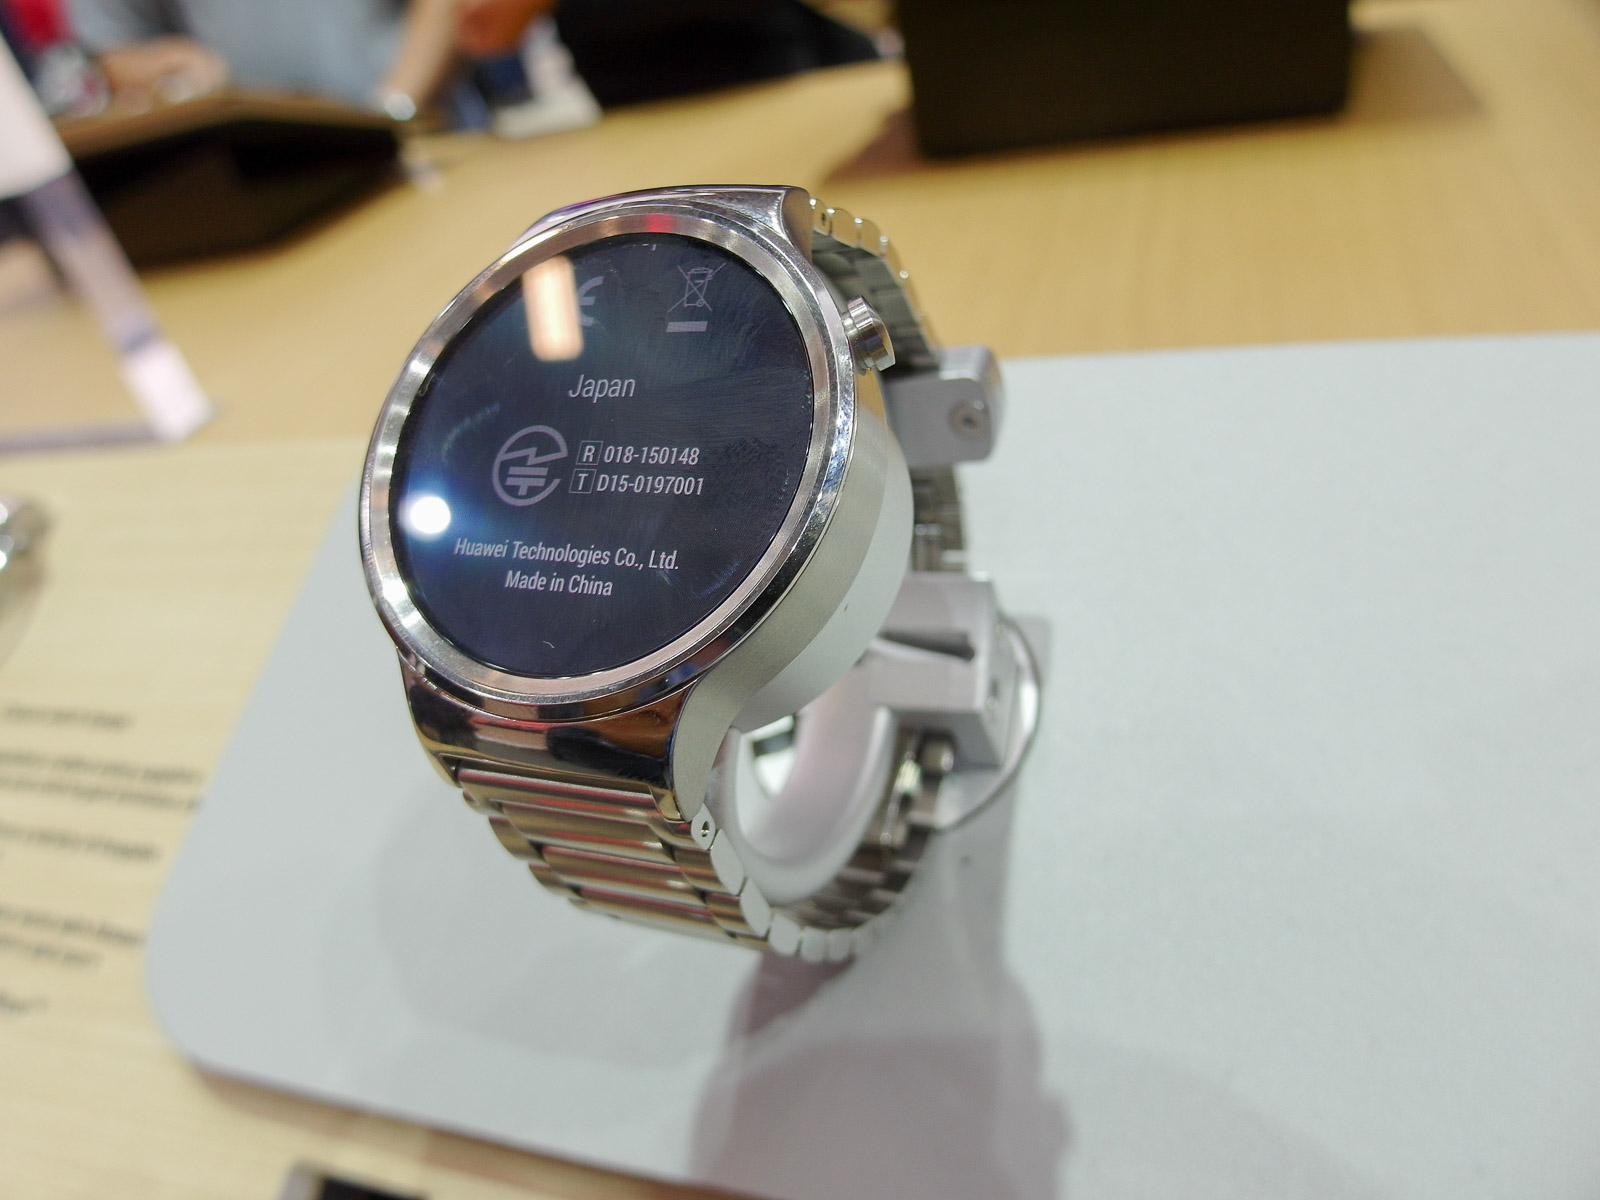 <h1>Huawei Watch SmartWatch</h1> <h2>IFA 2015 SmartHomeConsult Report</h2>